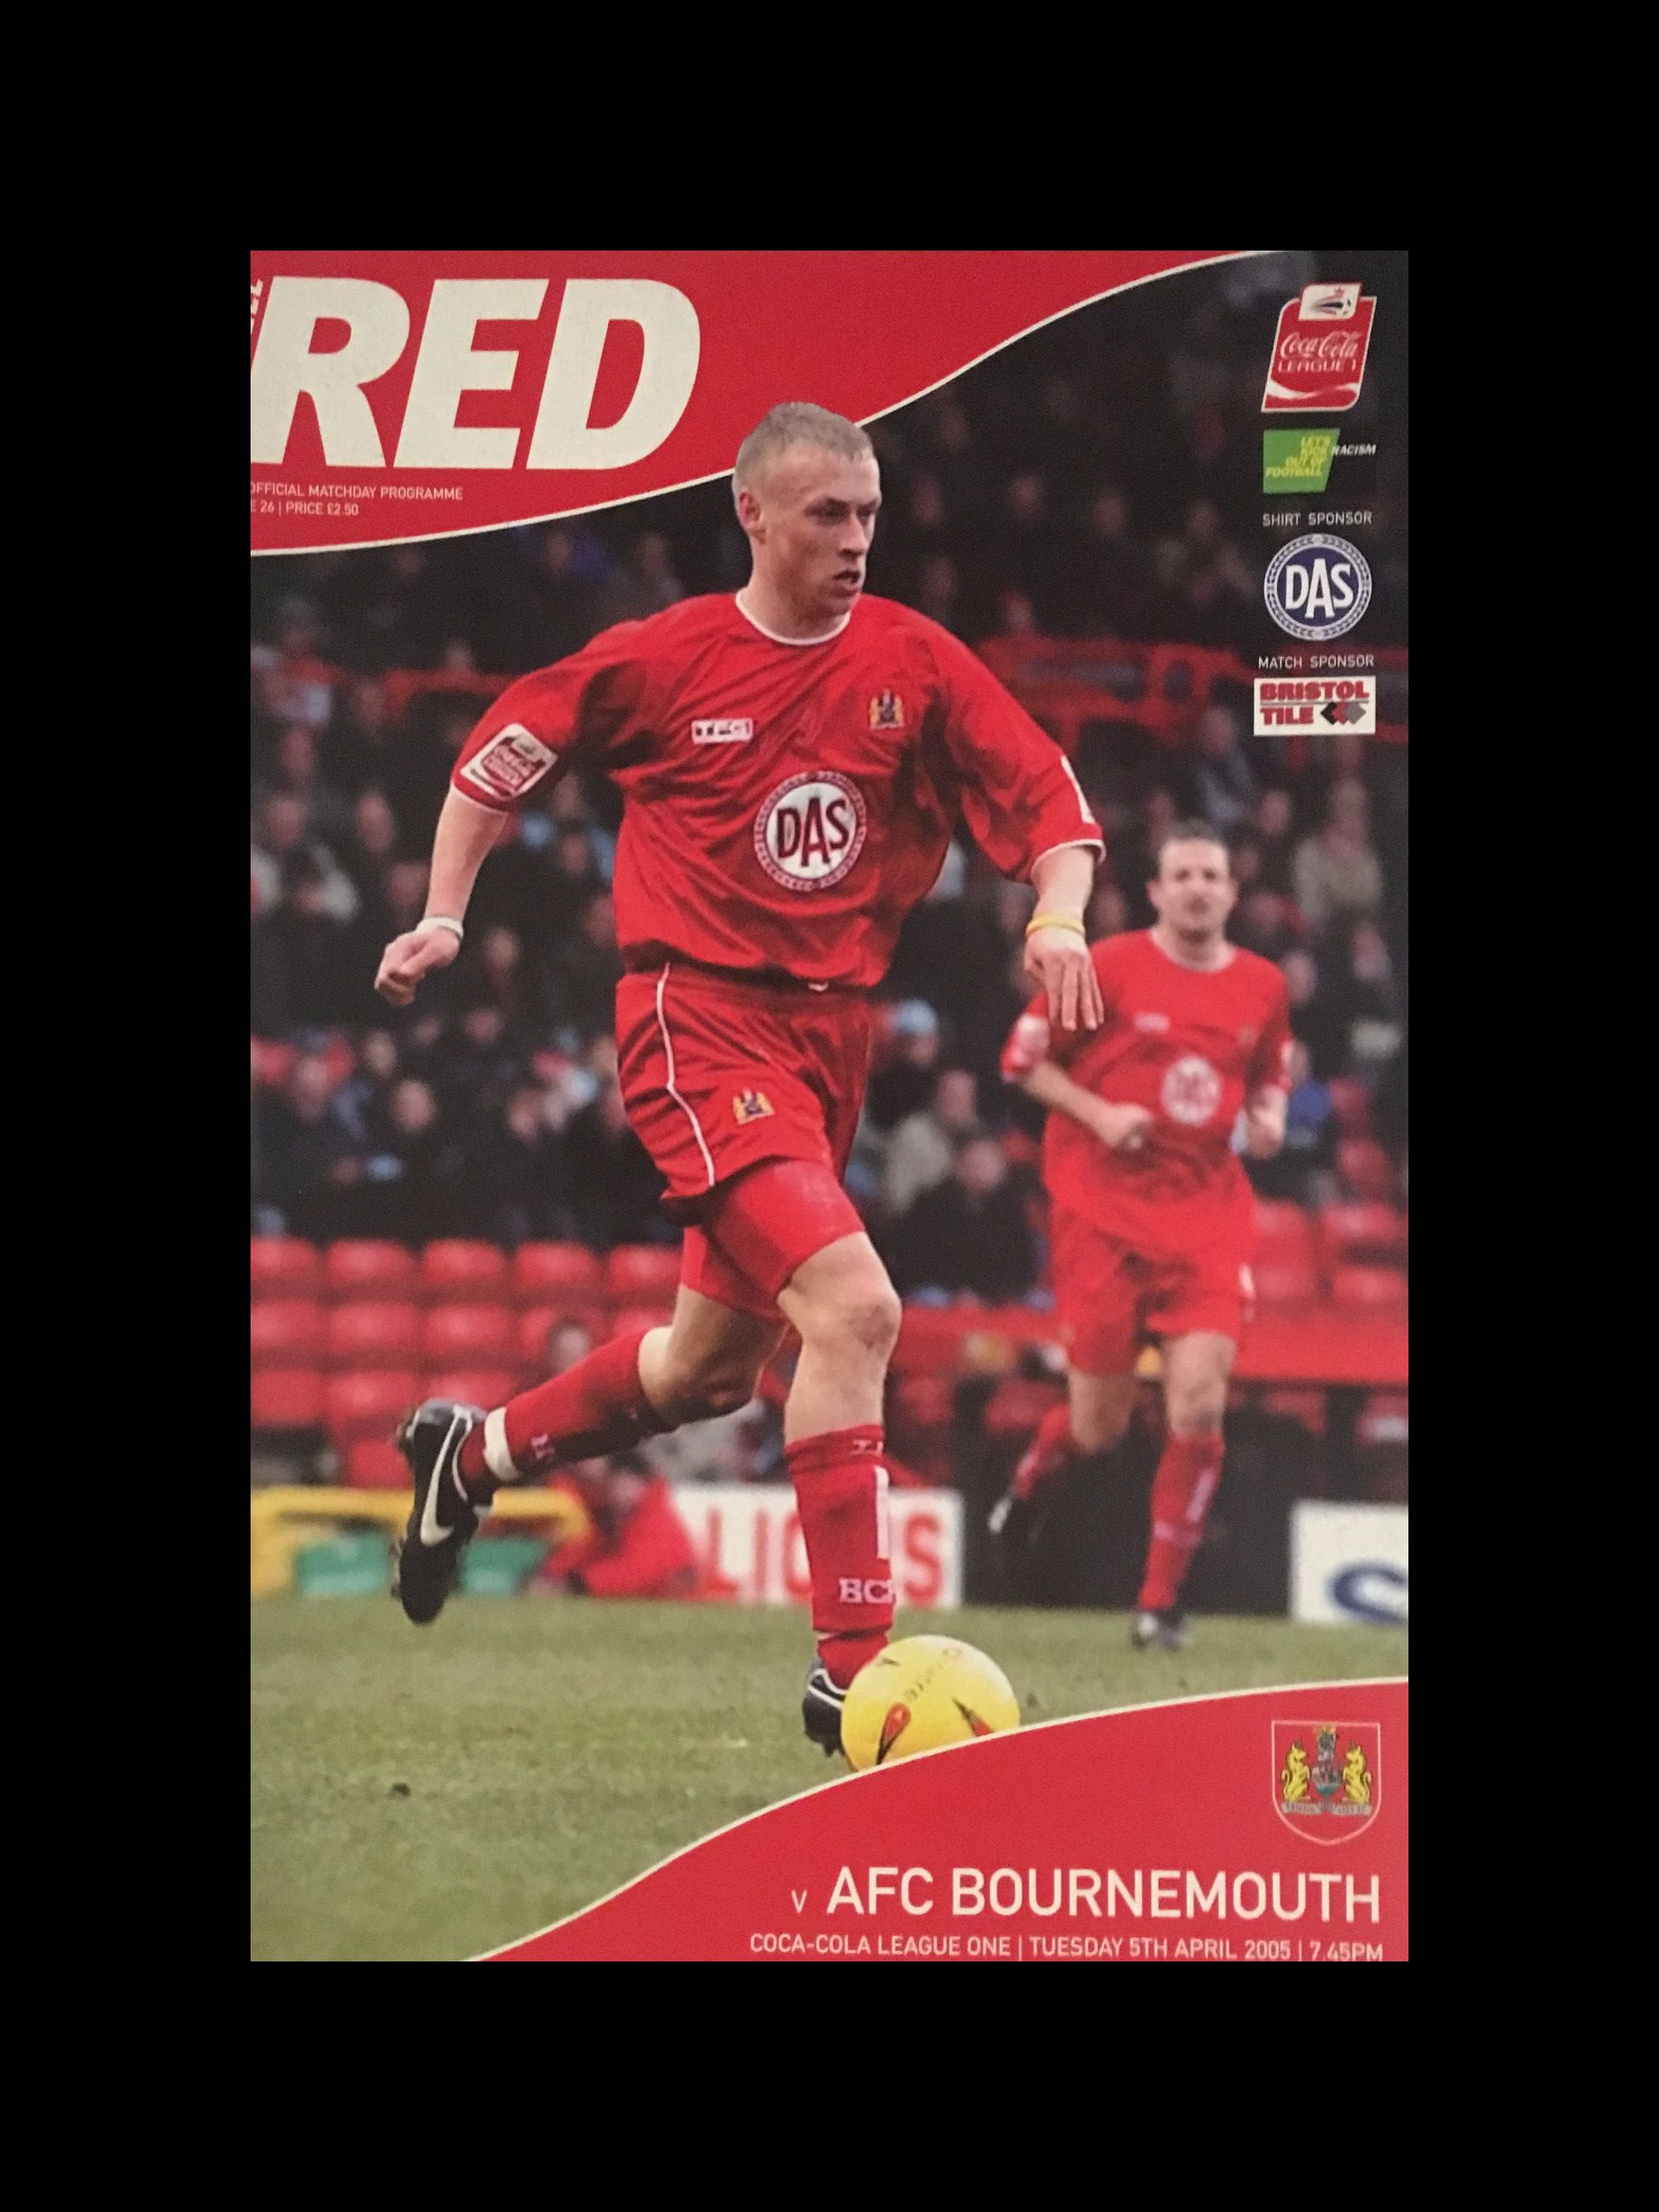 Bristol City v AFC Bournemouth 05-04-2005 Programme